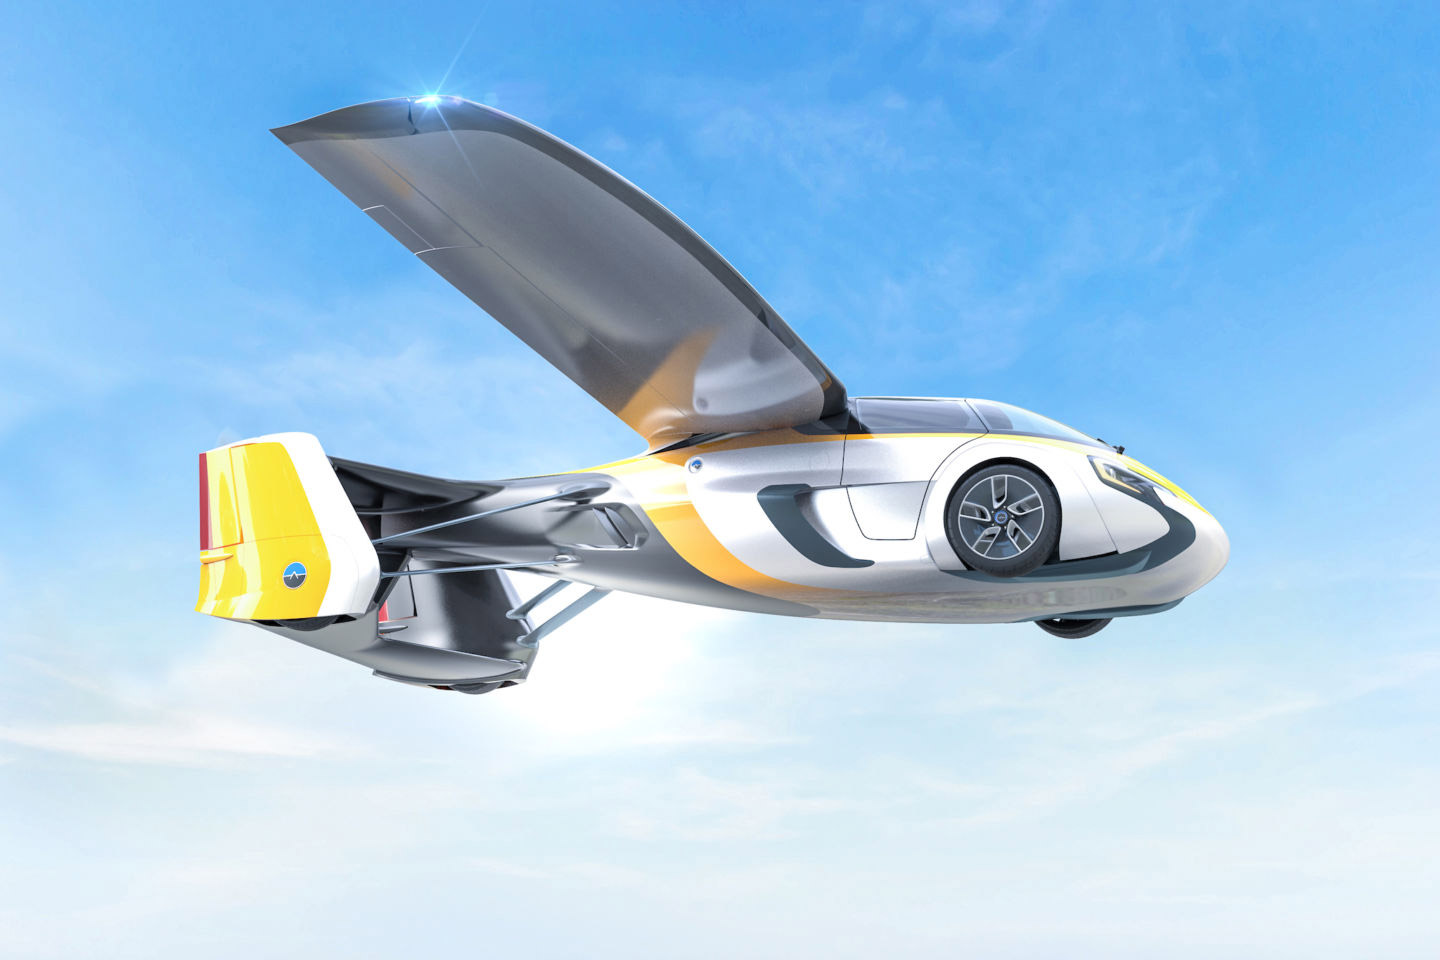 AeroMobil Wants To Get Your George Jetson On With Its Flying Car